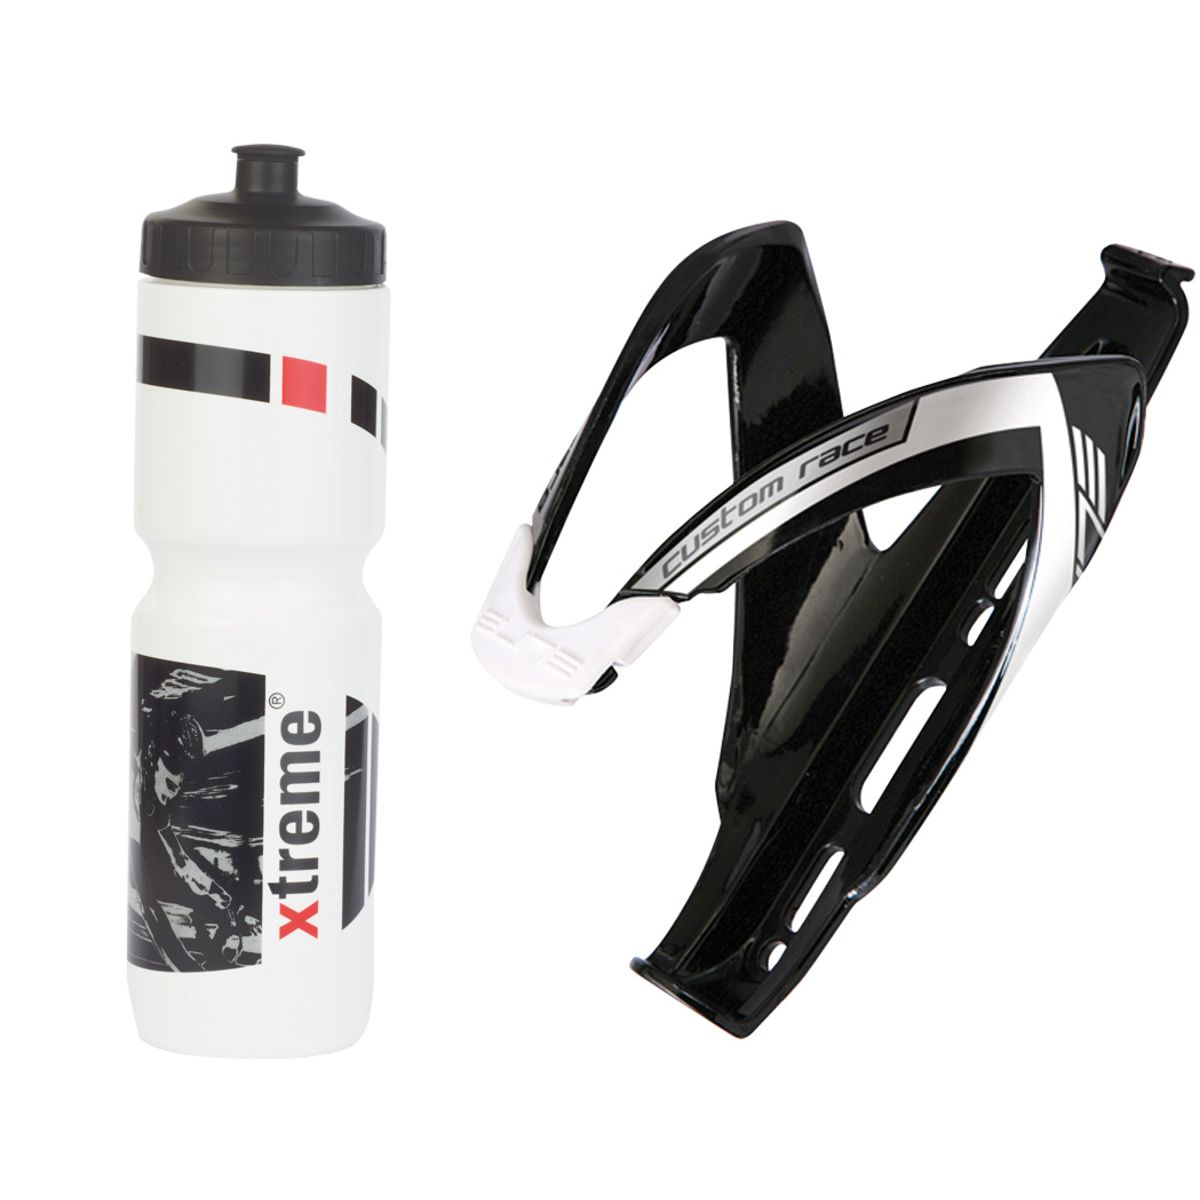 Hobby 1 l drinks bottle + Elite Custom Race bottle cage set